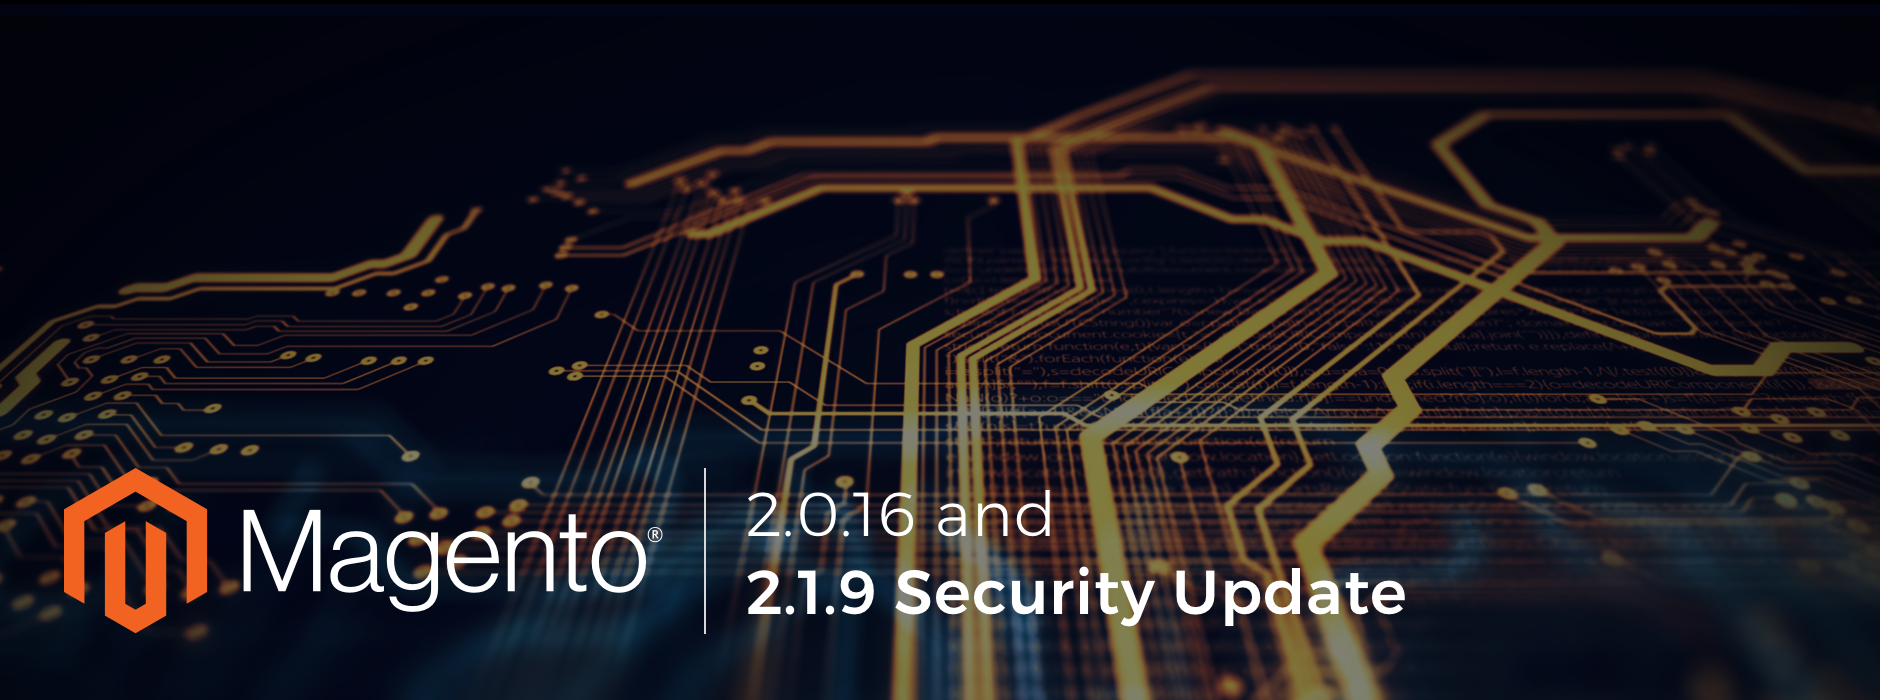 2.0.16 and 2.1.9 Security Update